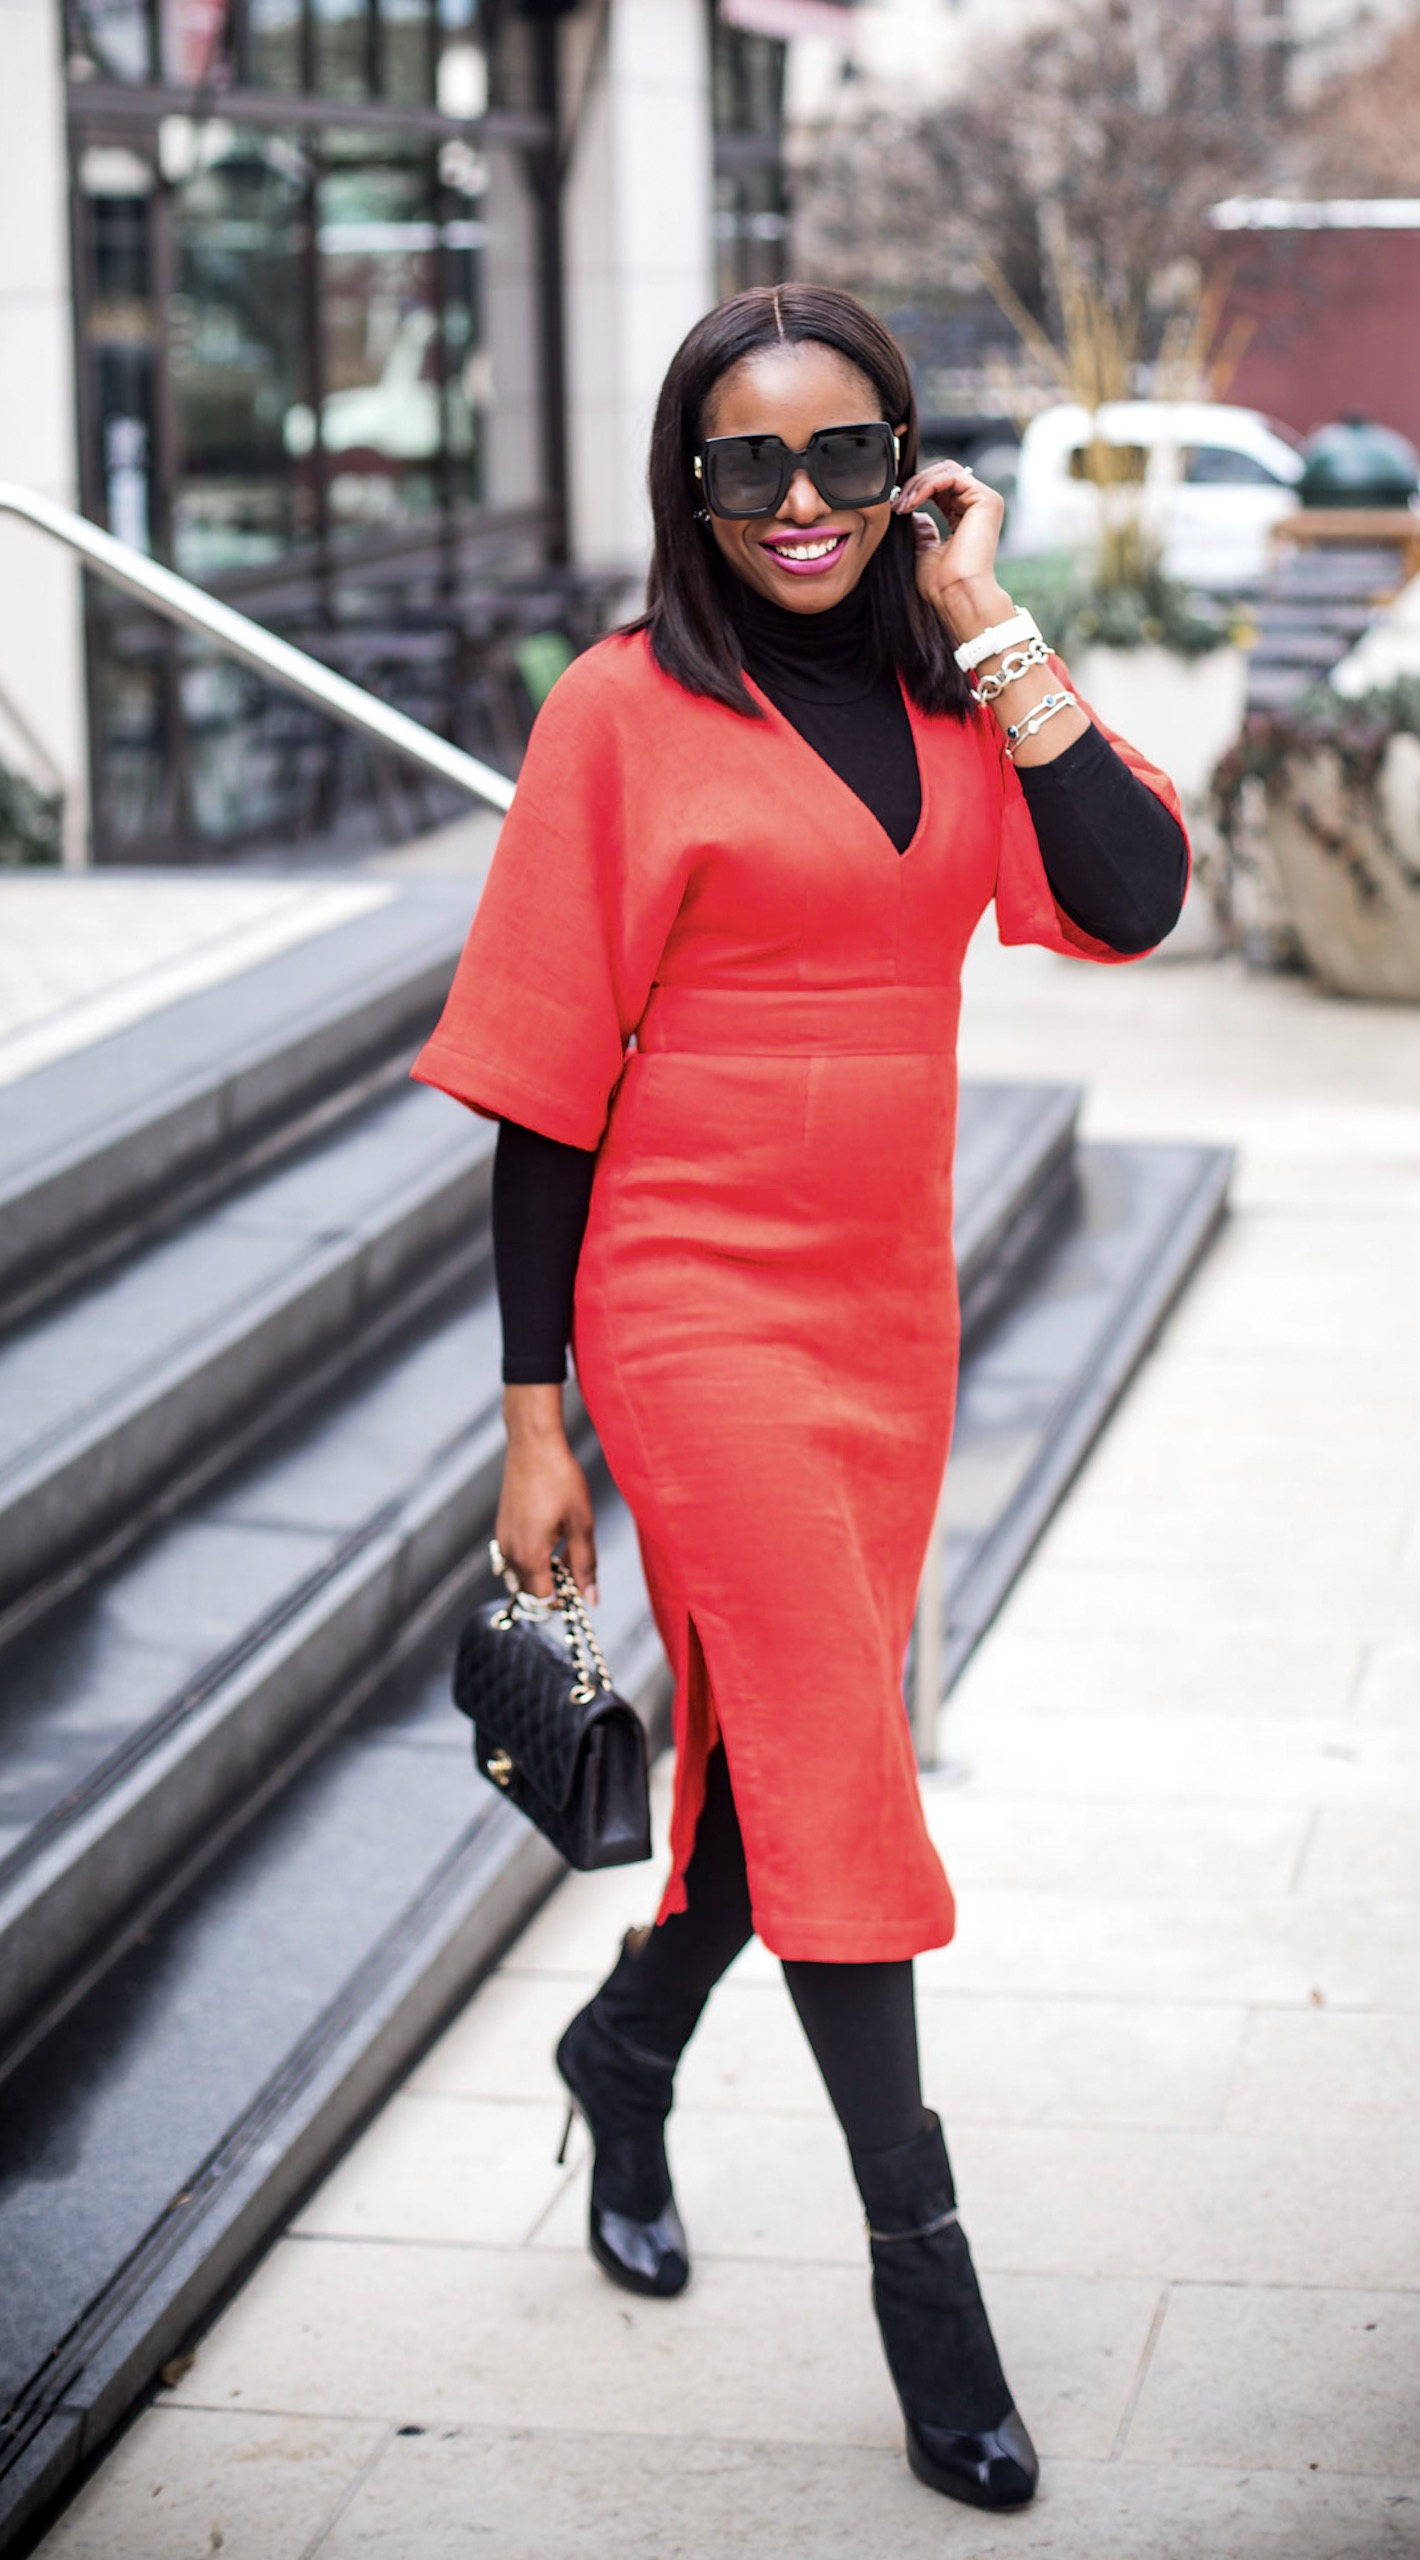 HOW TO STYLE A RED MIDI DRESS IN THE WINTER